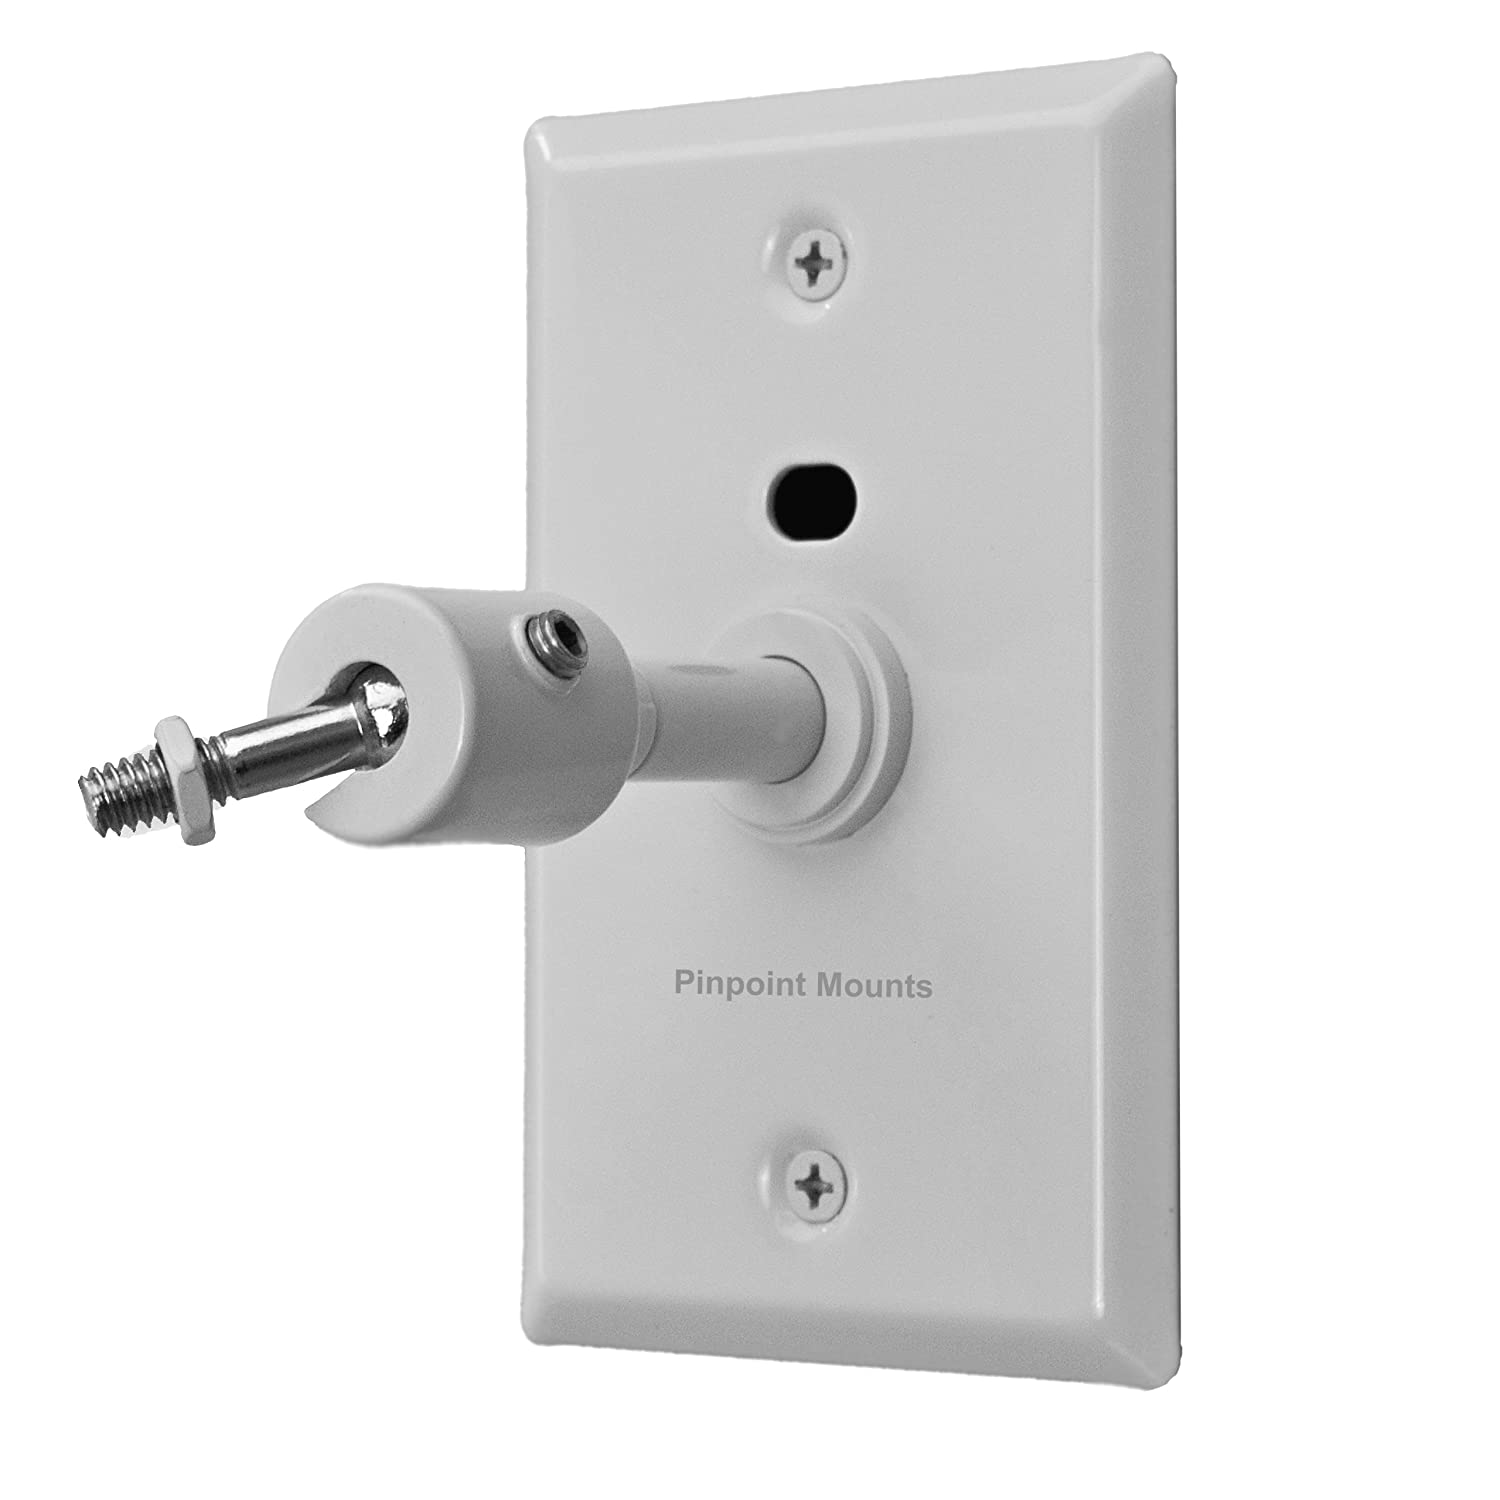 Amazon.com: Pinpoint Mounts AM21-White Universal Home Theater ...